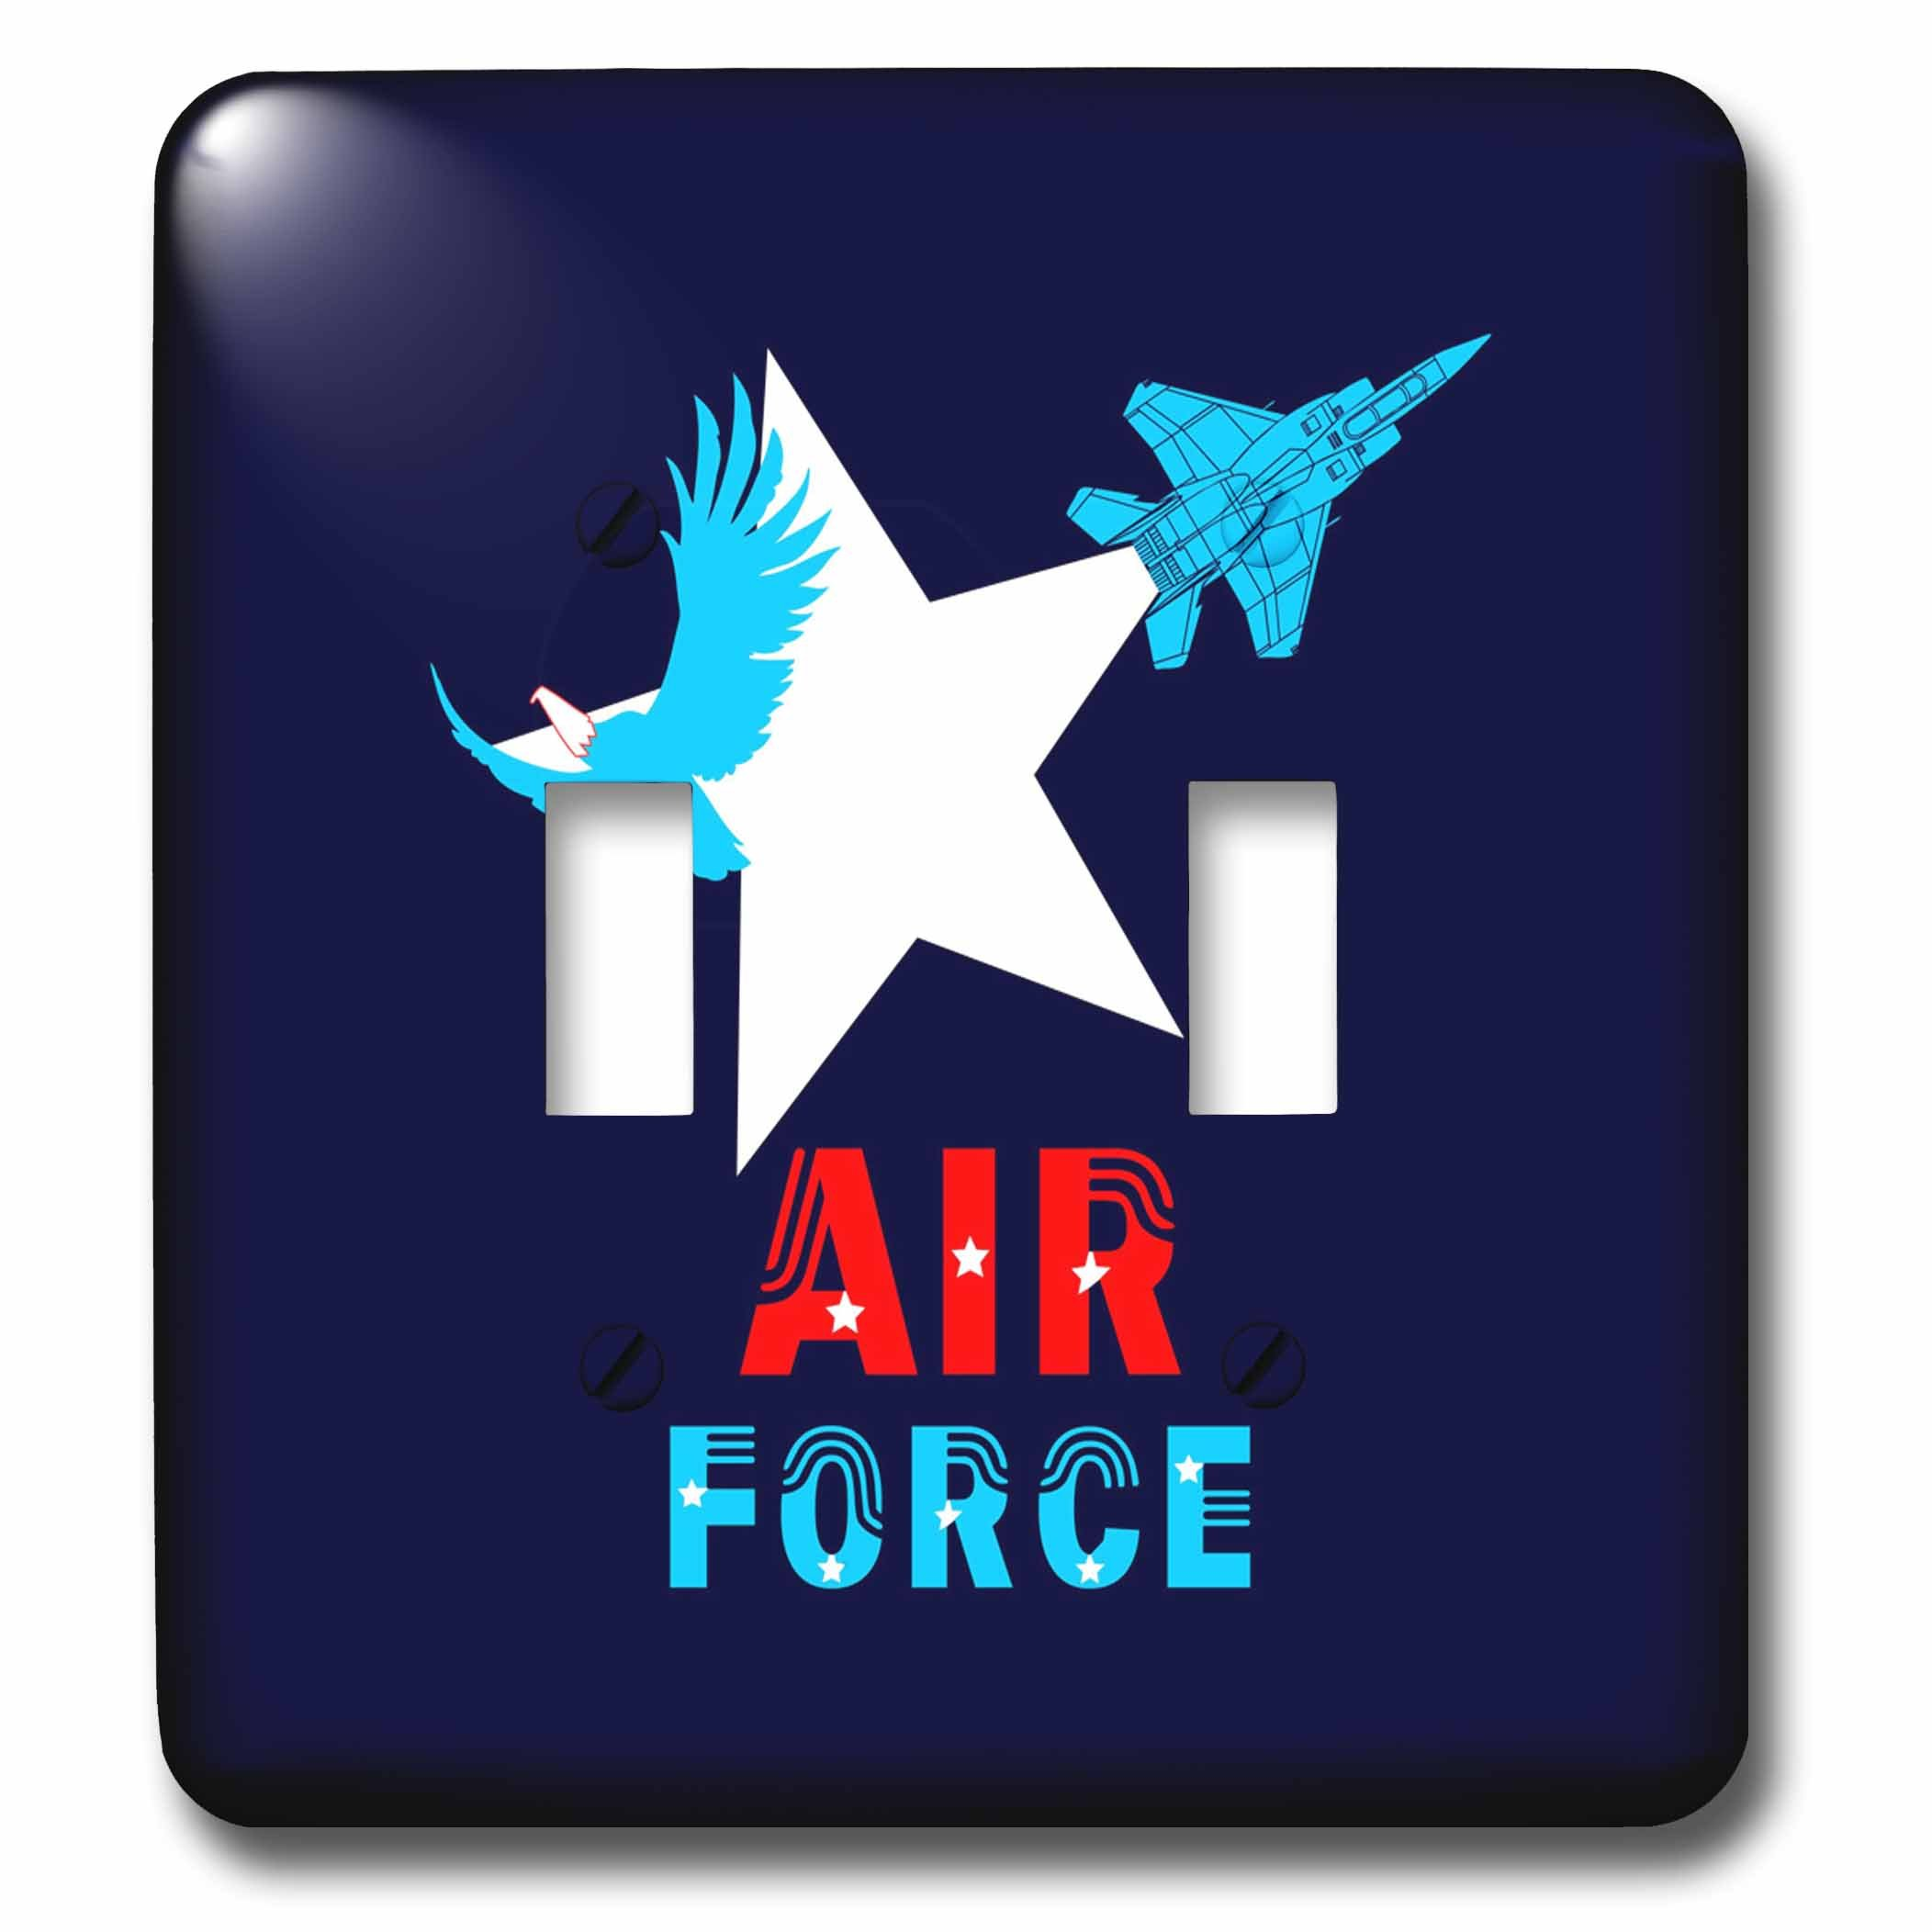 3dRose Alexis Design - Aviation - White star, bold eagle, military aircraft, text Air Force on blue - Light Switch Covers - double toggle switch (lsp_285886_2) by 3dRose (Image #1)